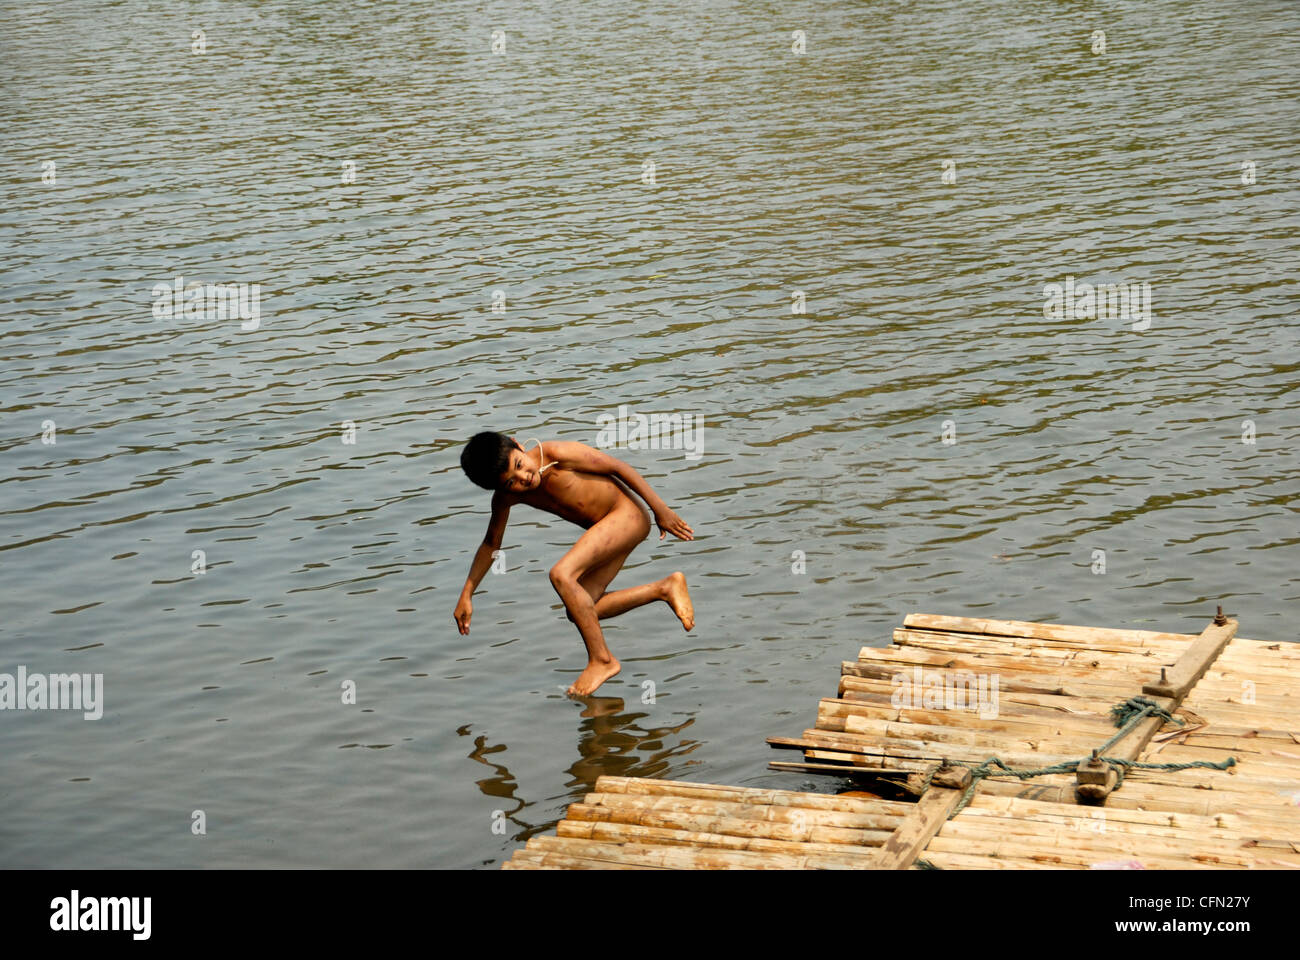 A very hot day boy jumping into the Maechem river to cool off.Maechem Chiang mai.Northern Thailand taken on 14/03/2009 - Stock Image